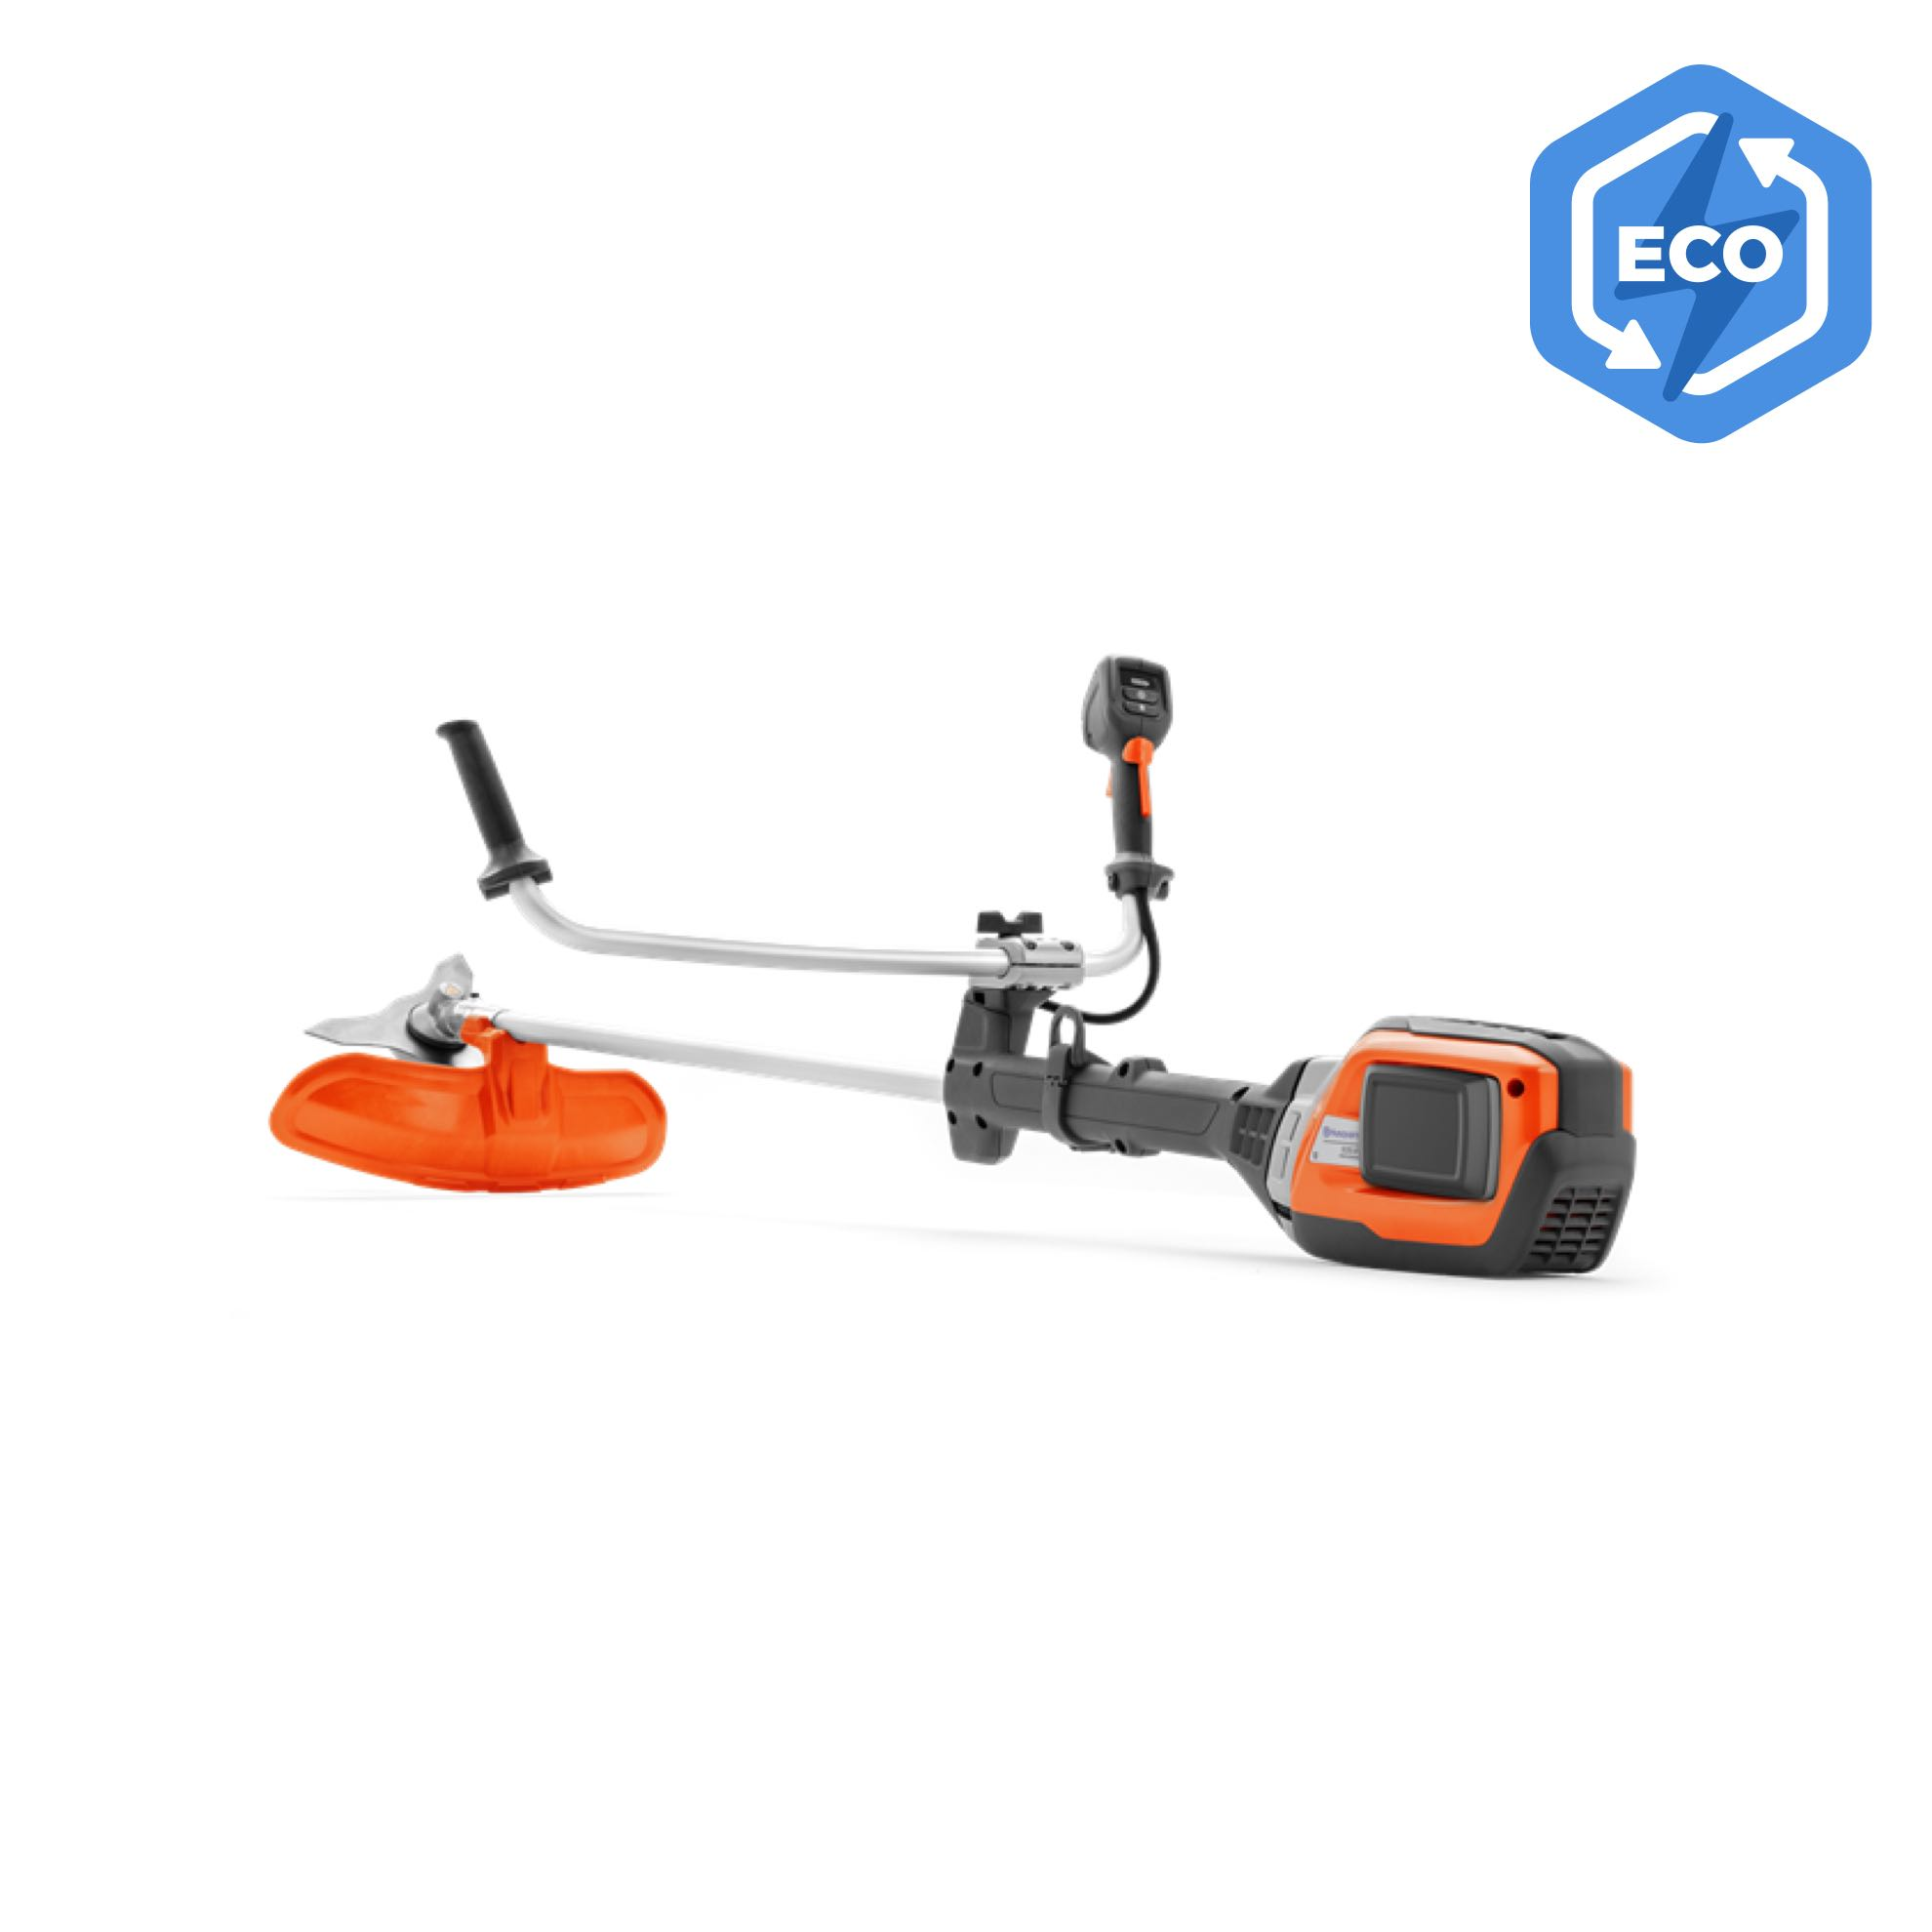 Husqvarna 535iFR Clearing Saw